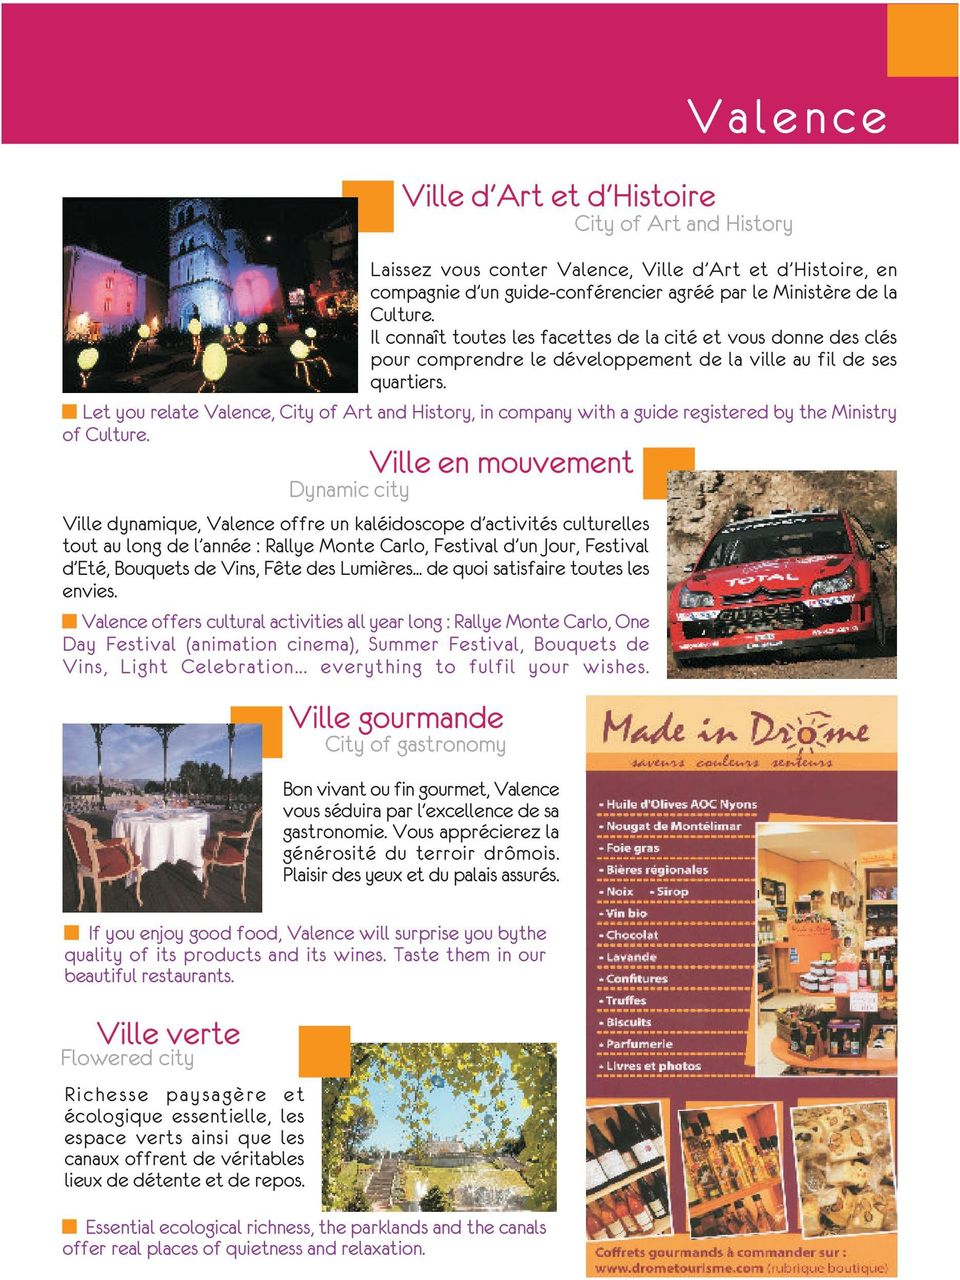 Let you relate Valence, City of Art and History, in company with a guide registered by the Ministry of Culture.